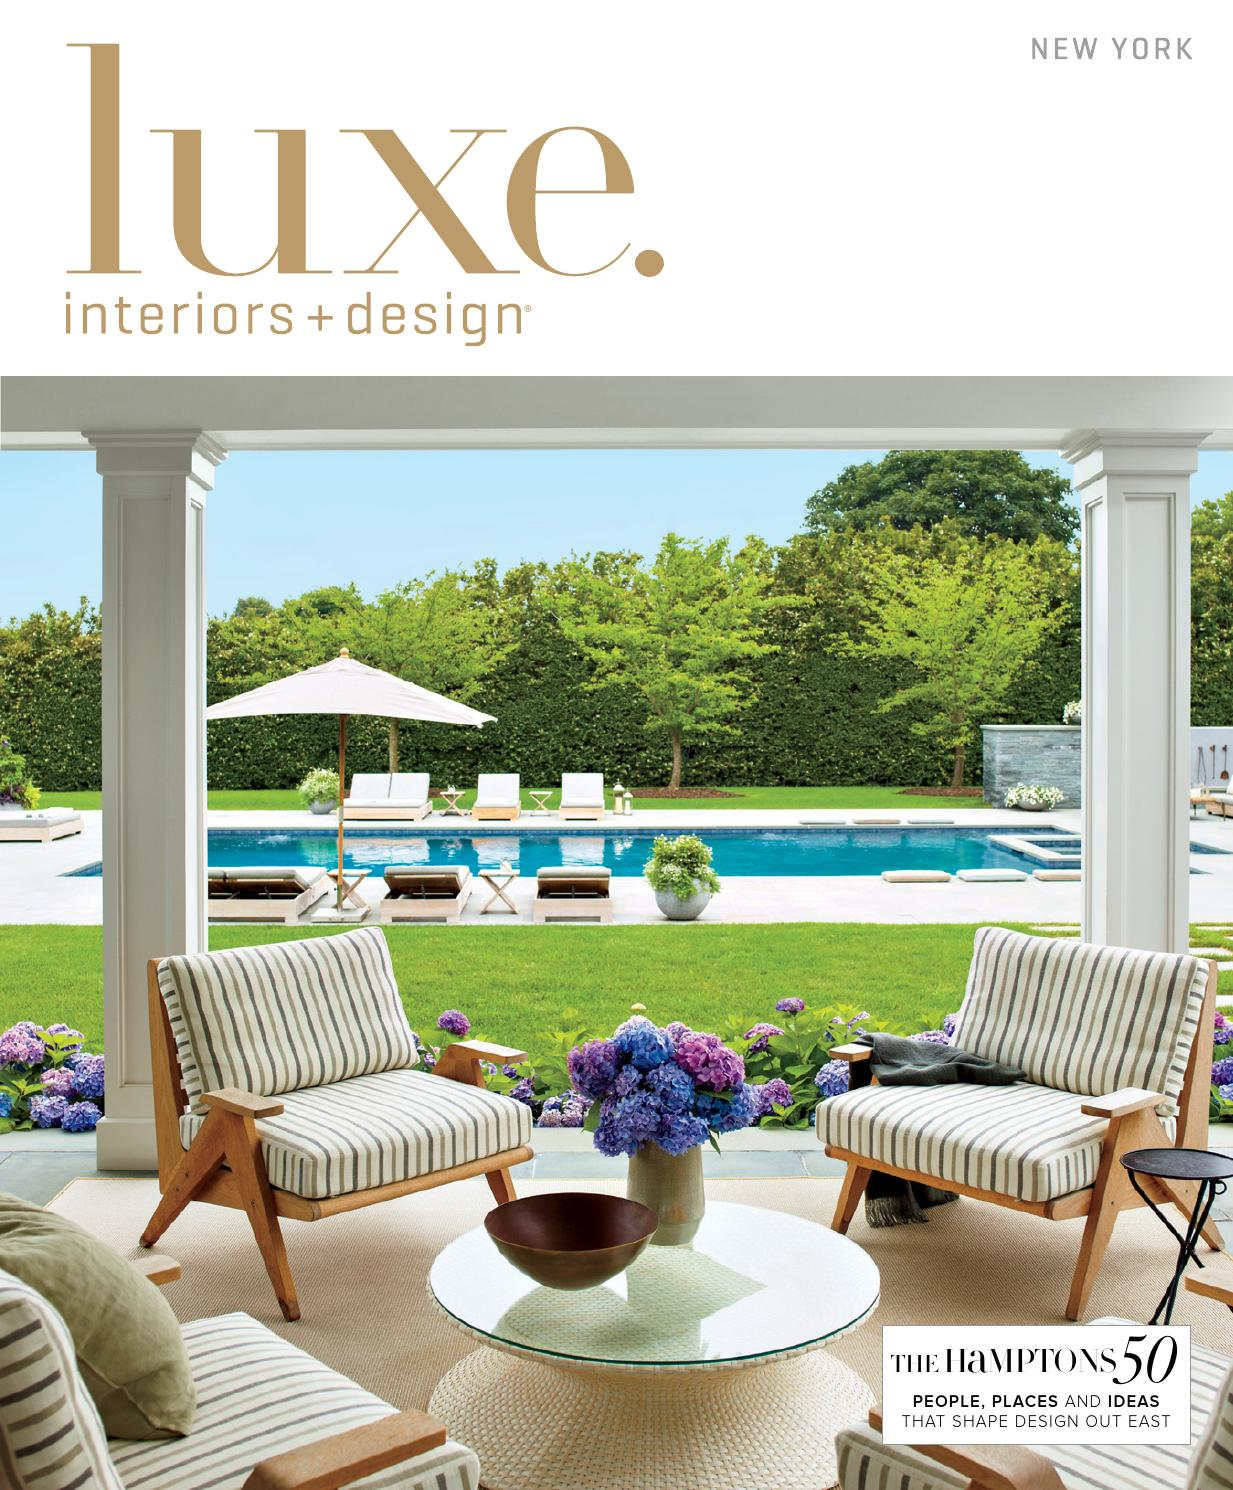 Luxe magazine summer 2015 new york by sandow issuu for Luxe furniture and design